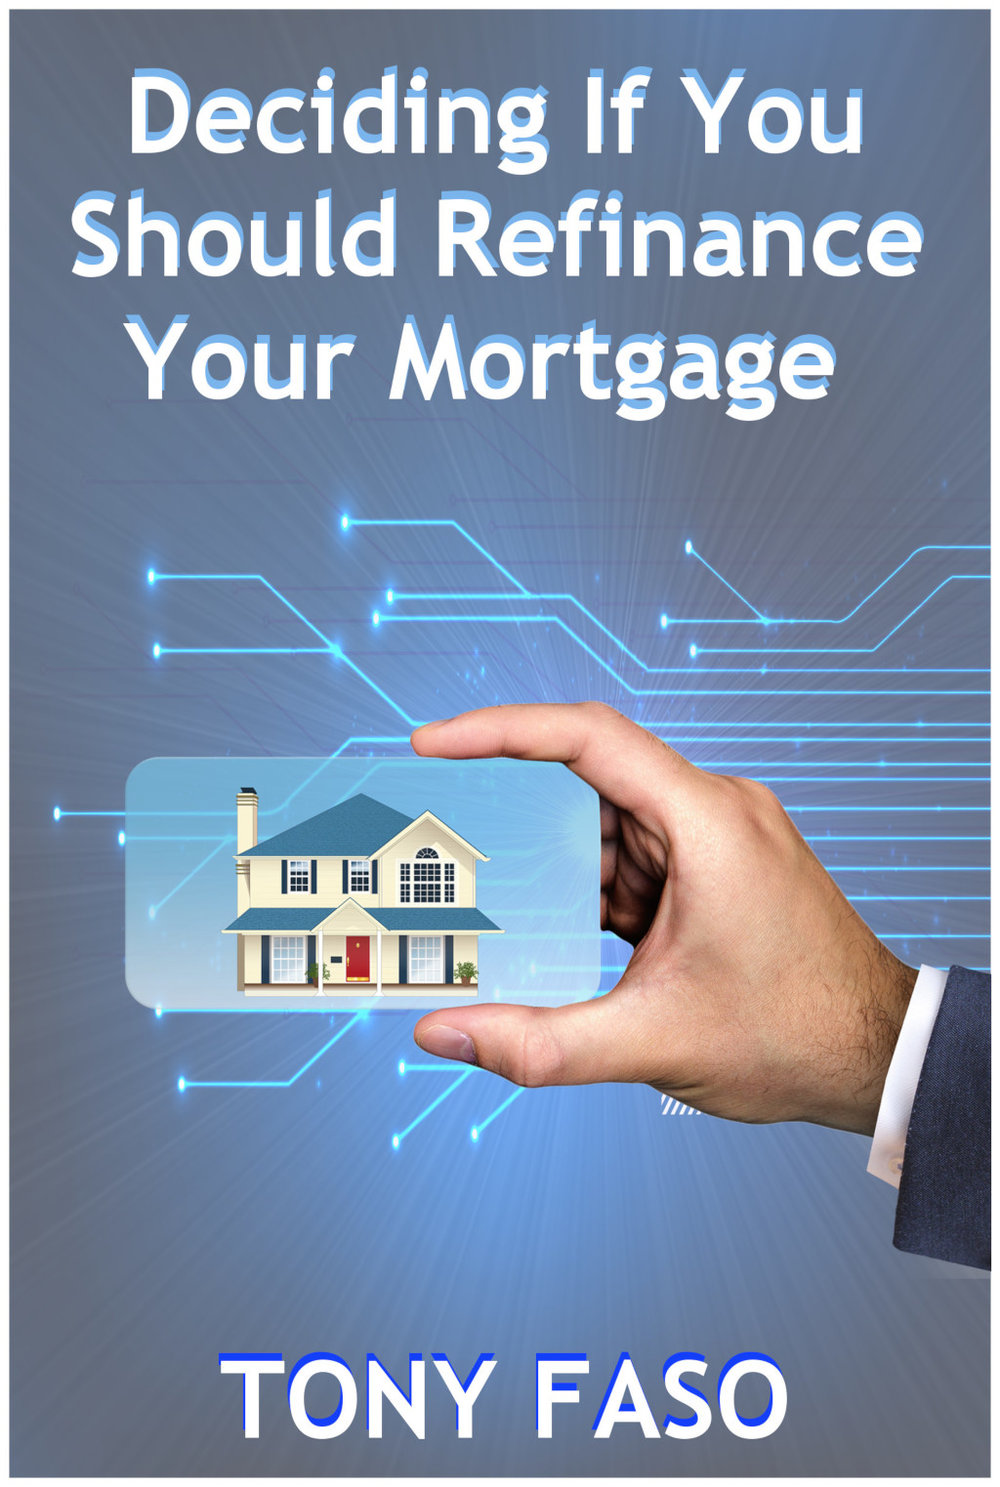 Deciding If You Should Refinance Your MortgageScaled.jpg